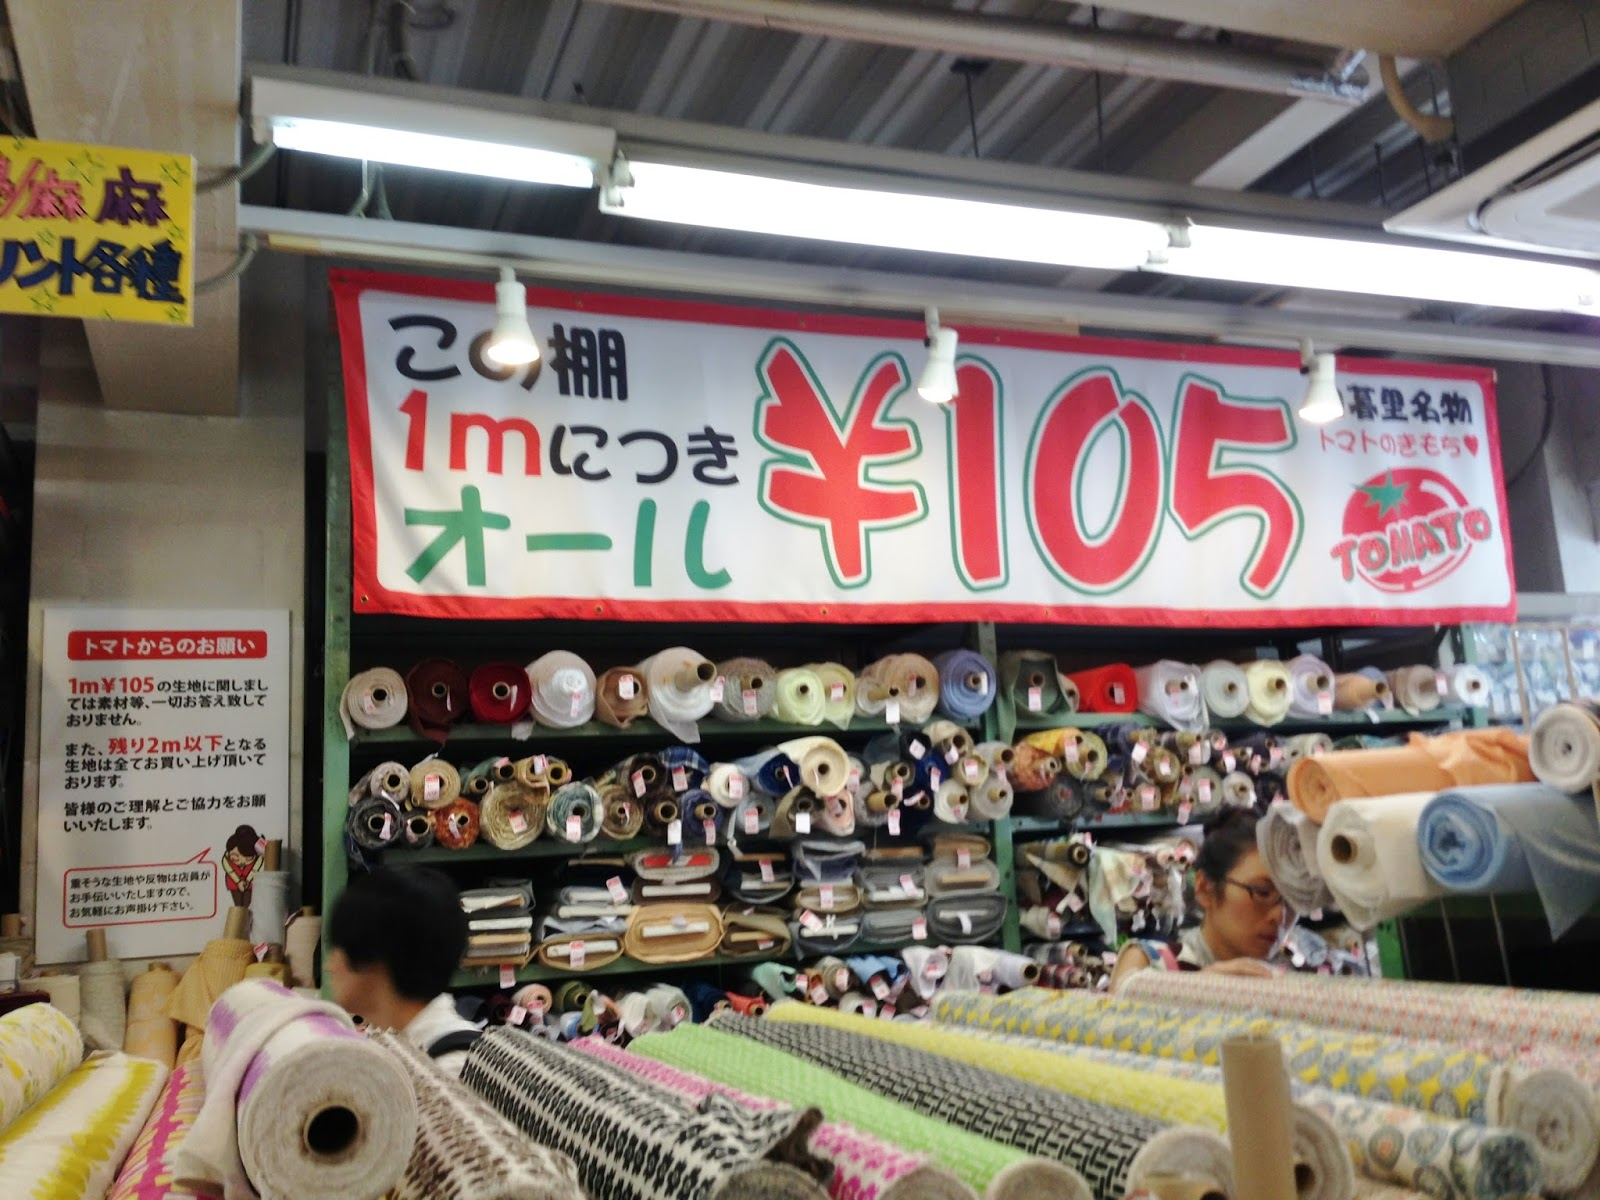 chick chick sewing: Our trip to Japan (August 2013) 猛暑日の続く日本に行っ ...